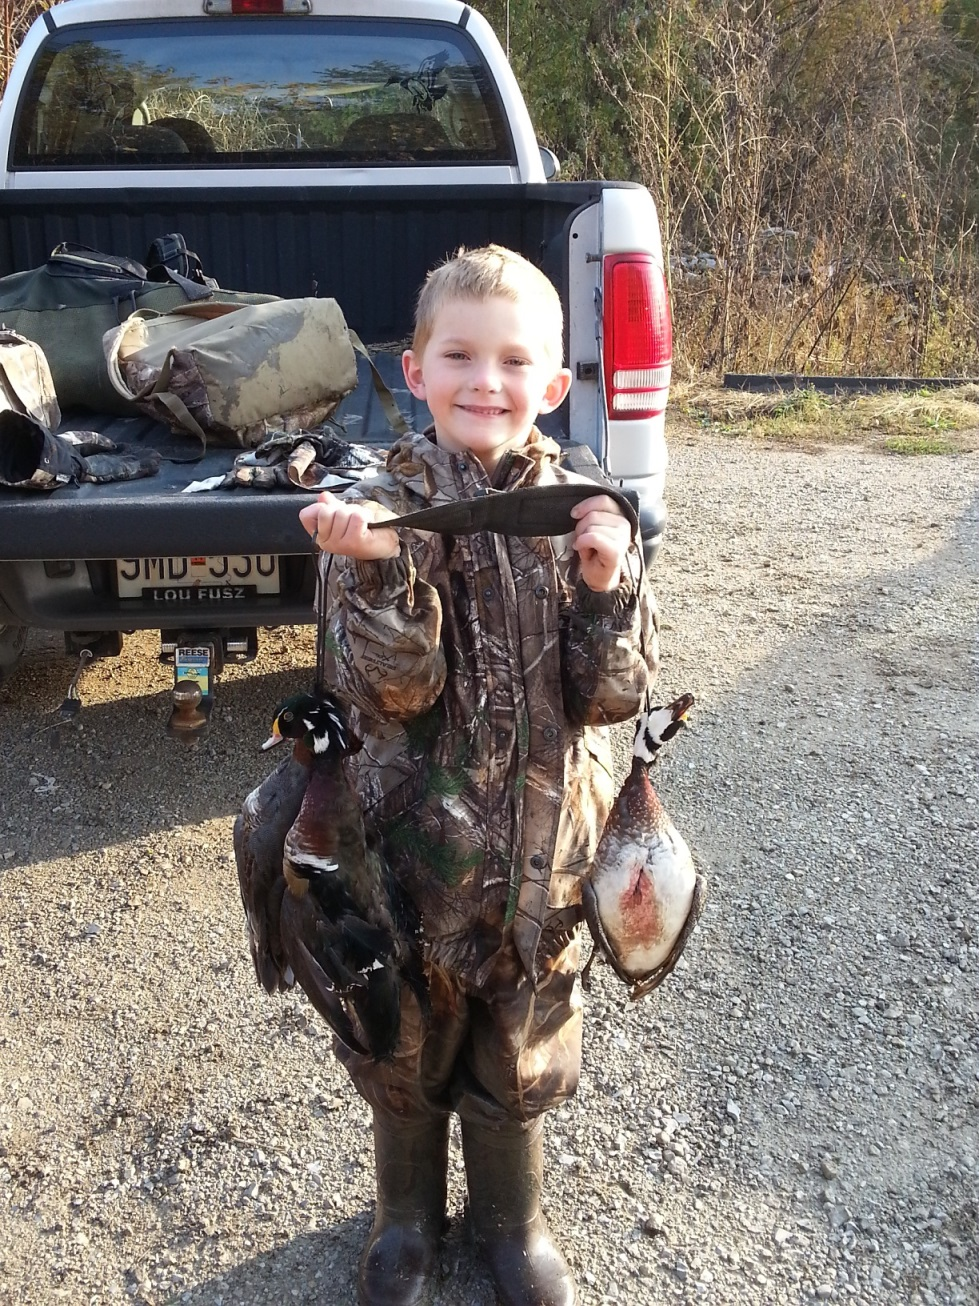 Brayden Hunting - resized.jpg